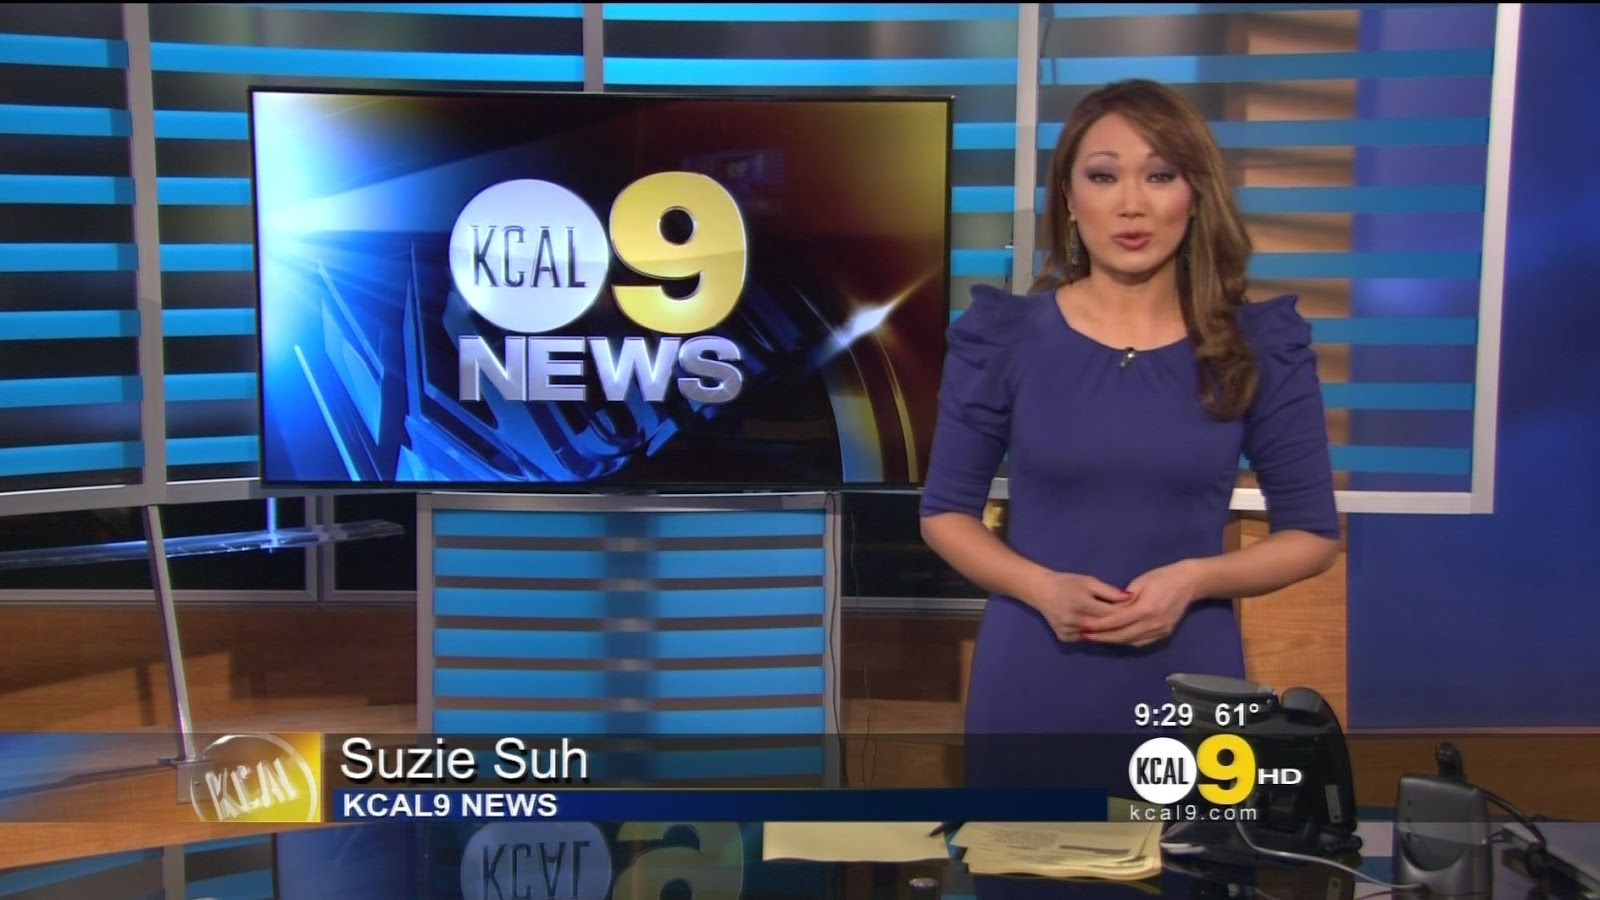 Suzie Suh KCAL 9 http://wwearboots.blogspot.com/2012/11/suzie-suh-of-kcal-news-has-some-great.html